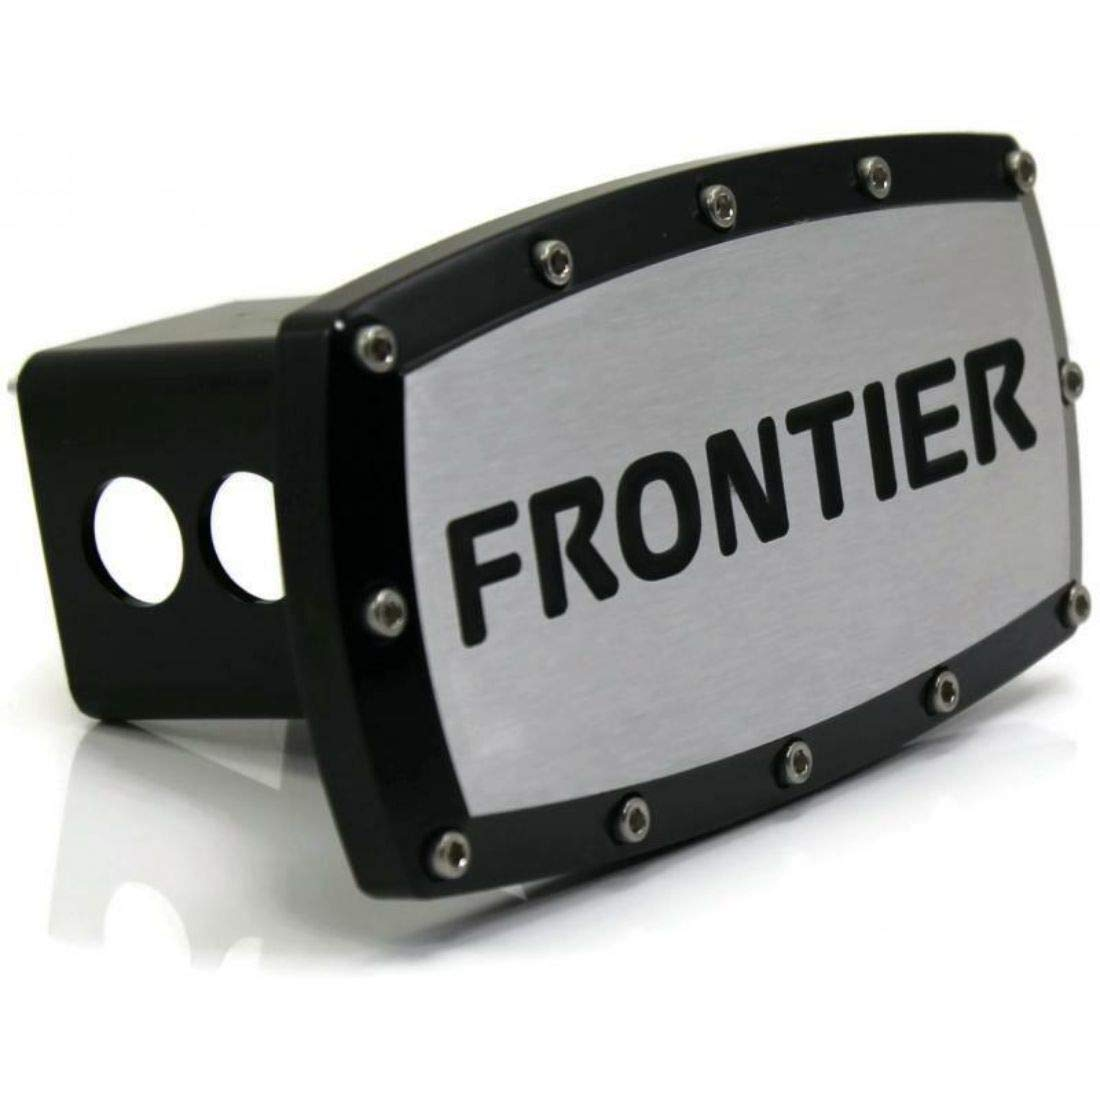 DanteGTS Nissan Frontier 2'' Tow Hitch Cover Plug Engraved Billet Black Powder Coated by Elite Automotive